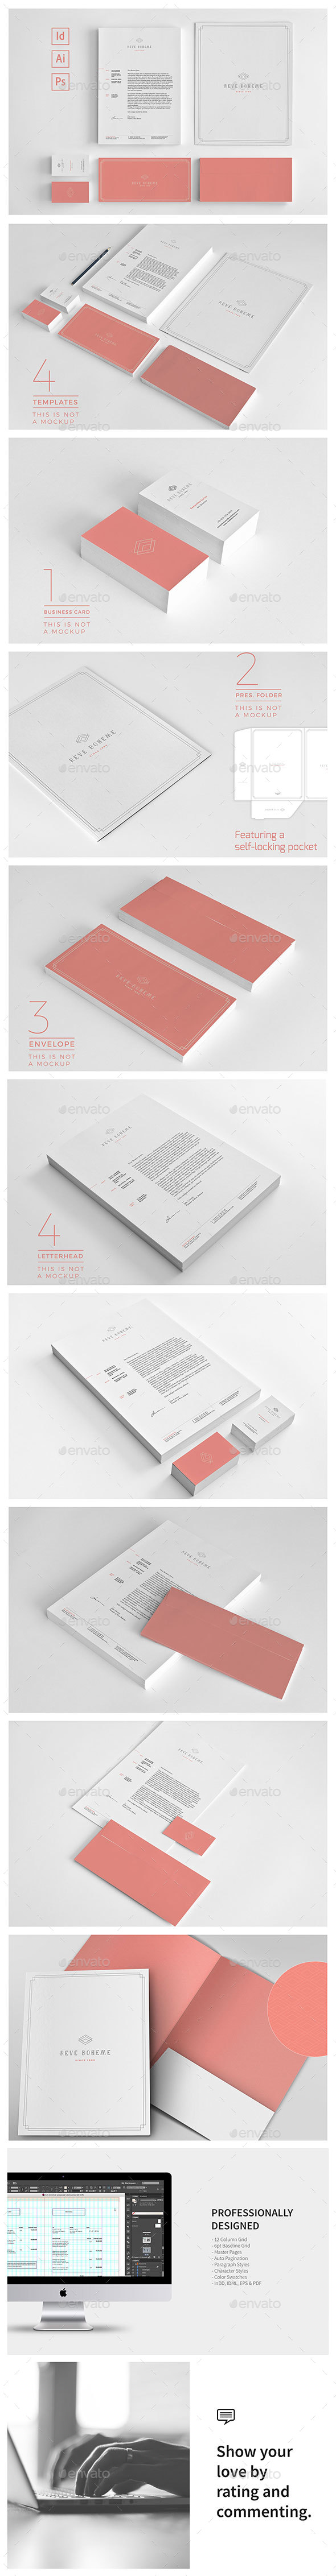 Stationery Corporate Identity 008 - Stationery Print Templates